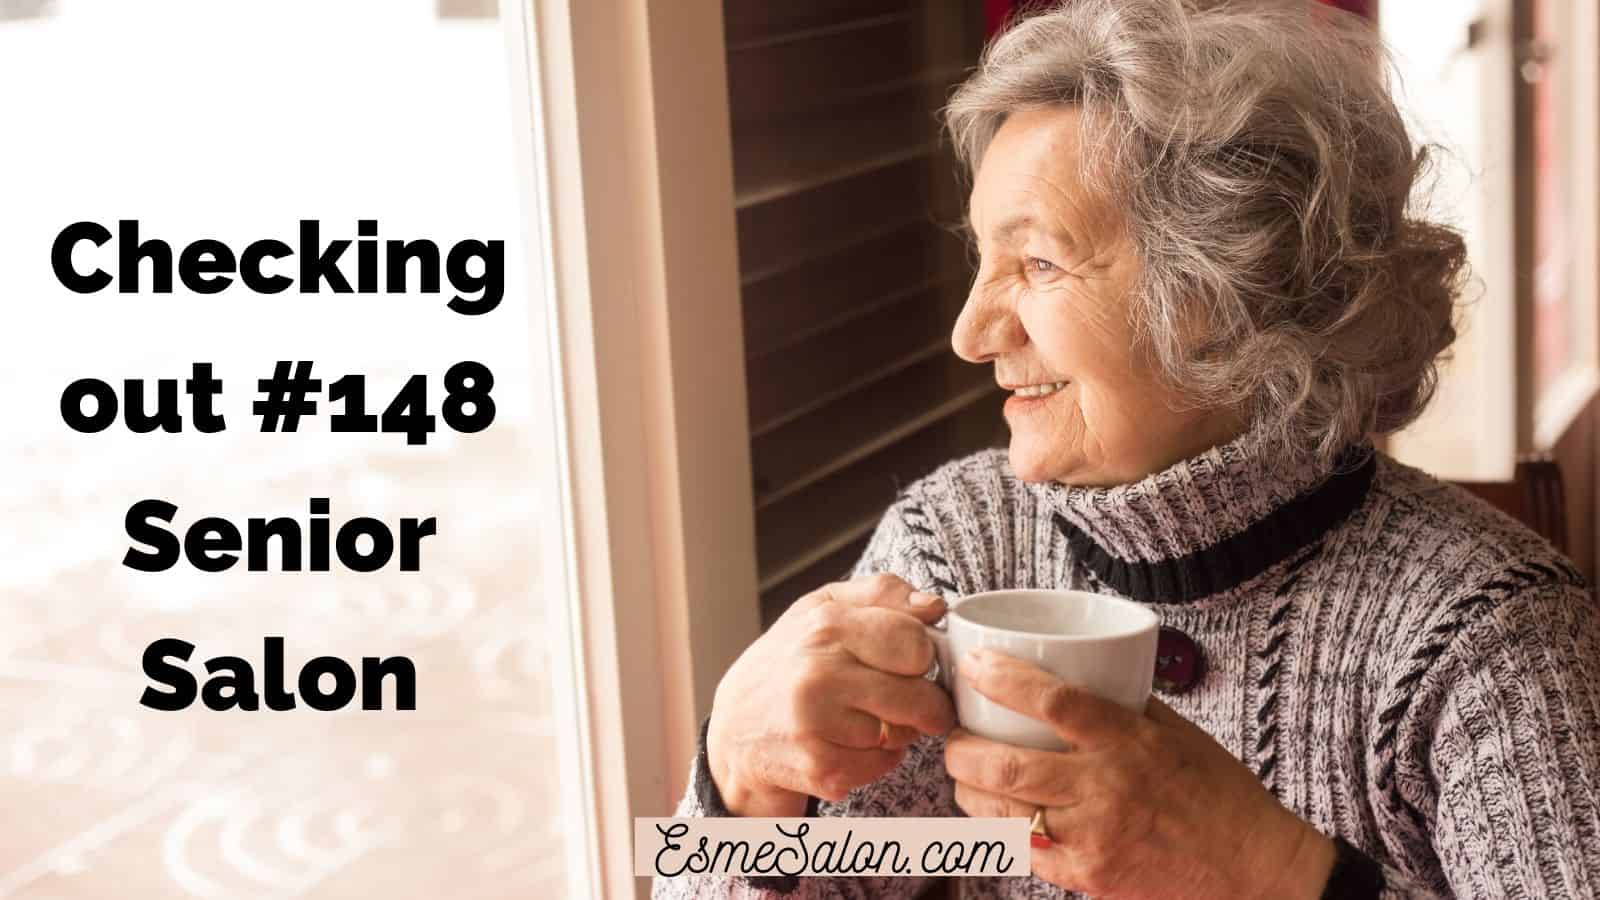 Checking out #148 Senior Salon